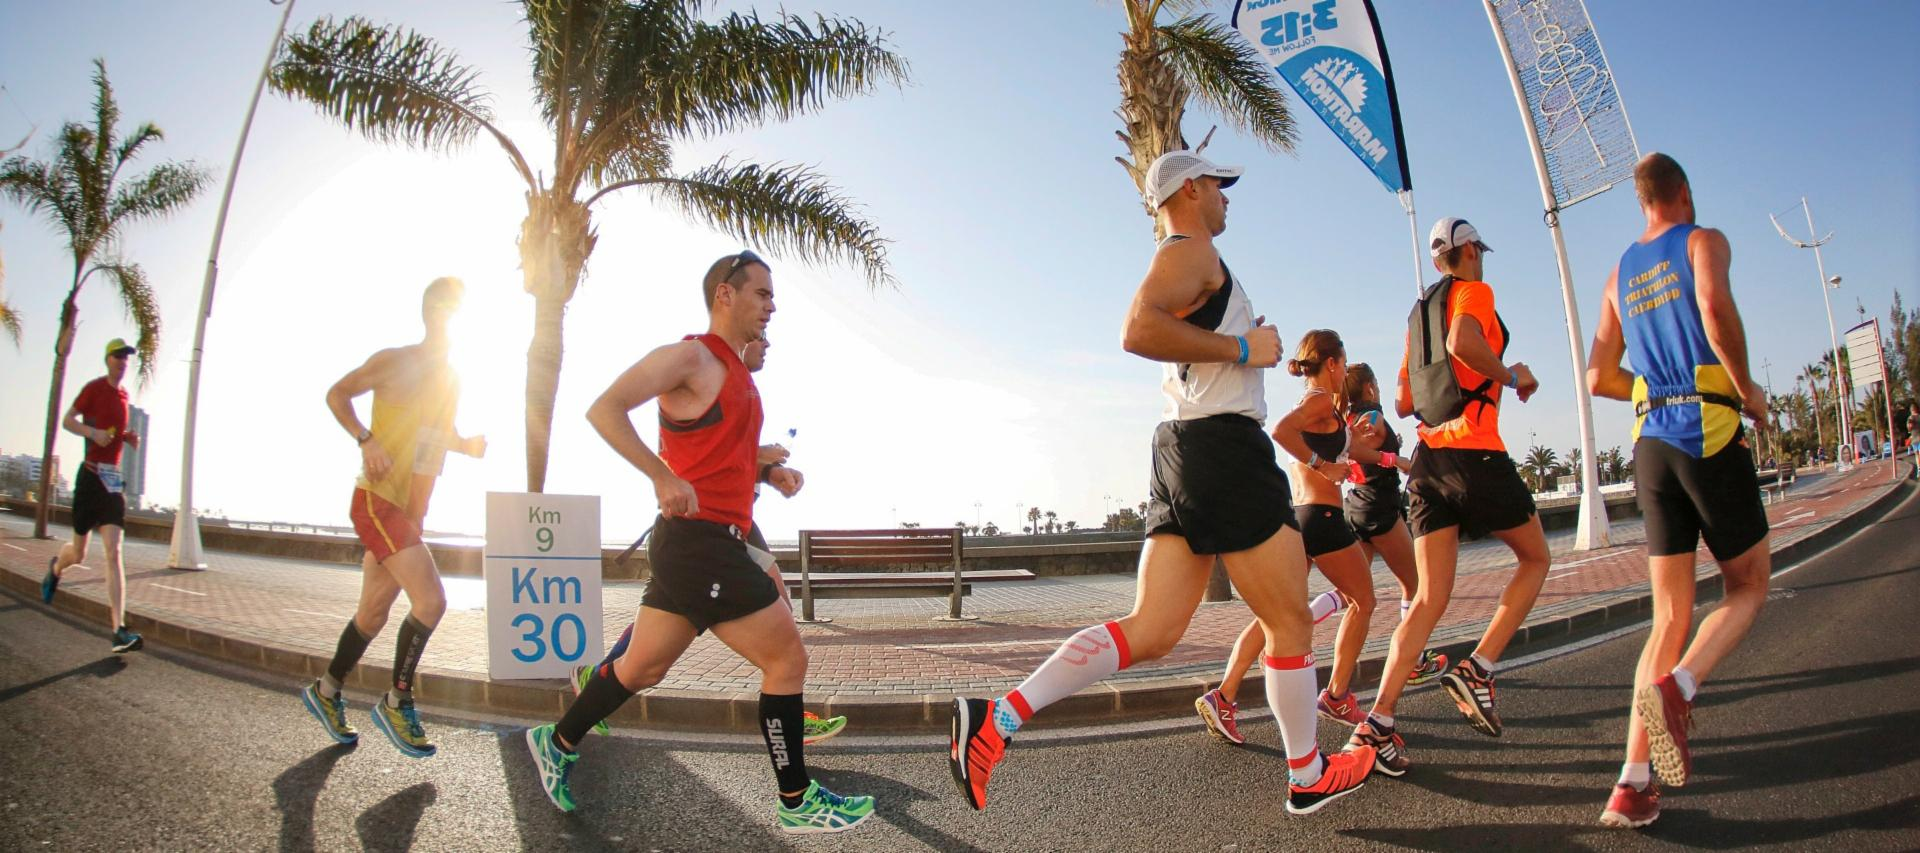 Runners in the Lanzarote Marathon